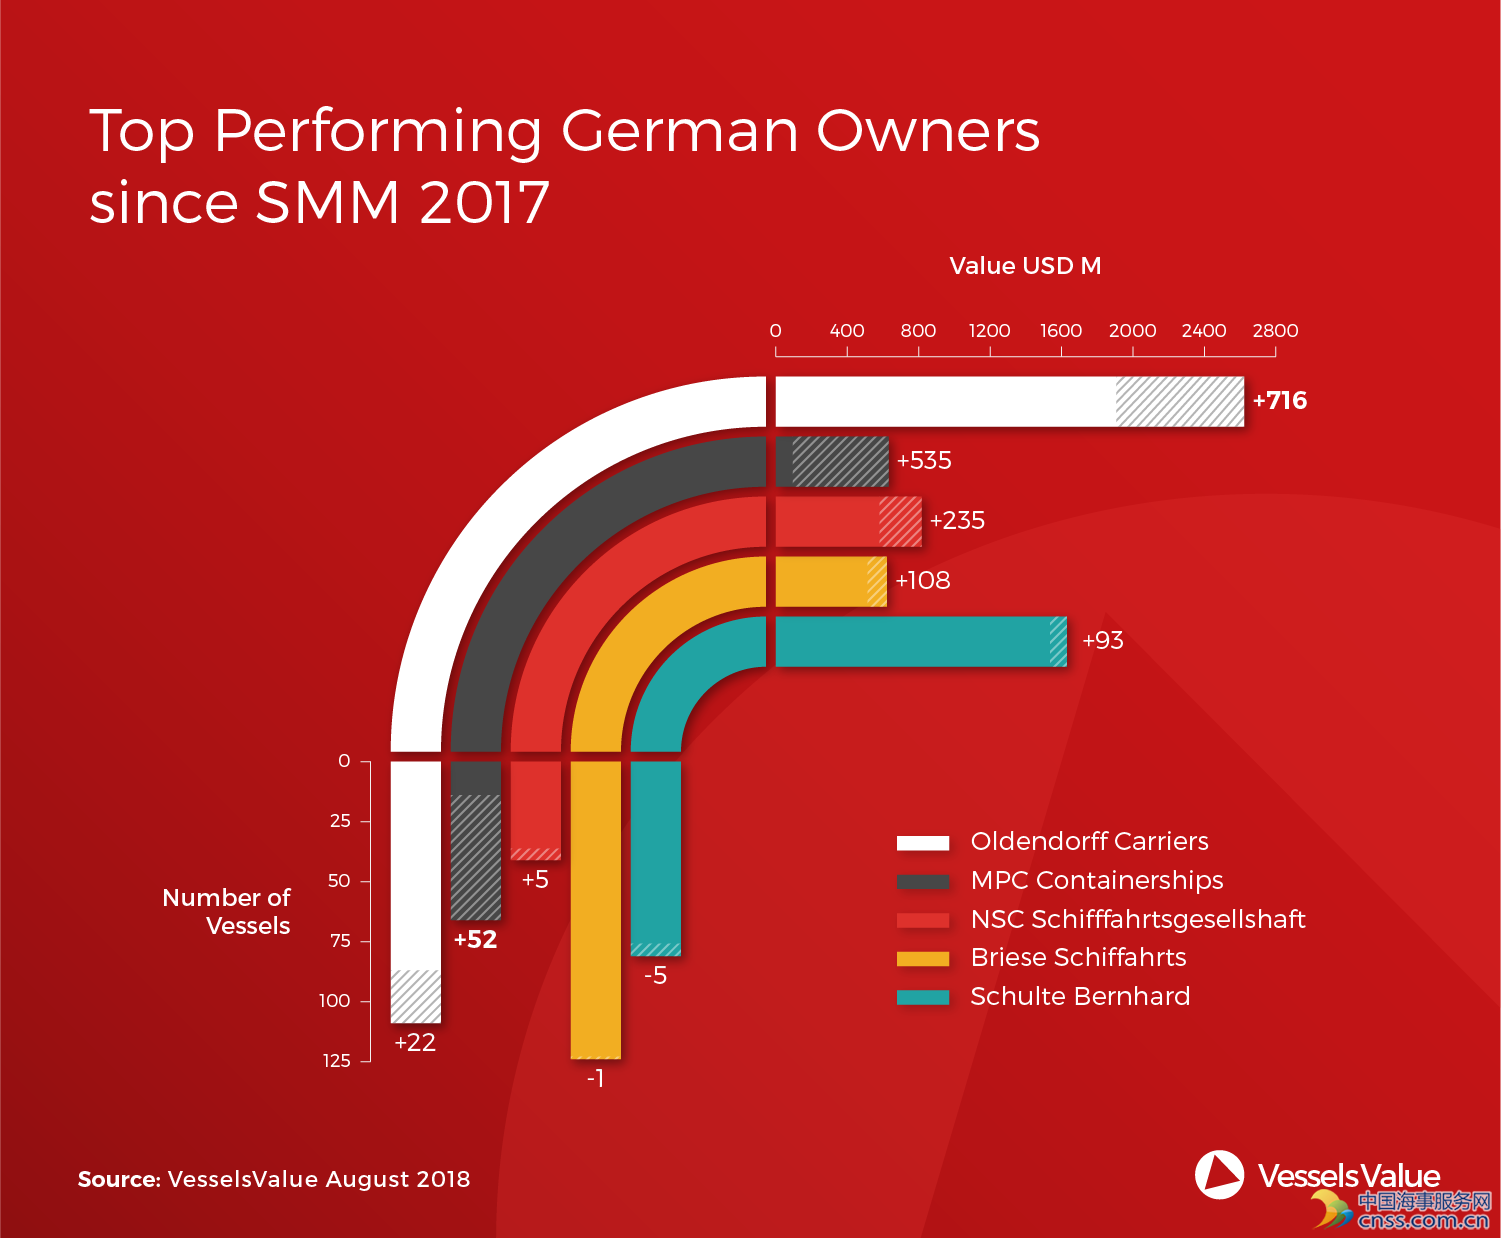 Top Performing German Owners Since SMM 2017